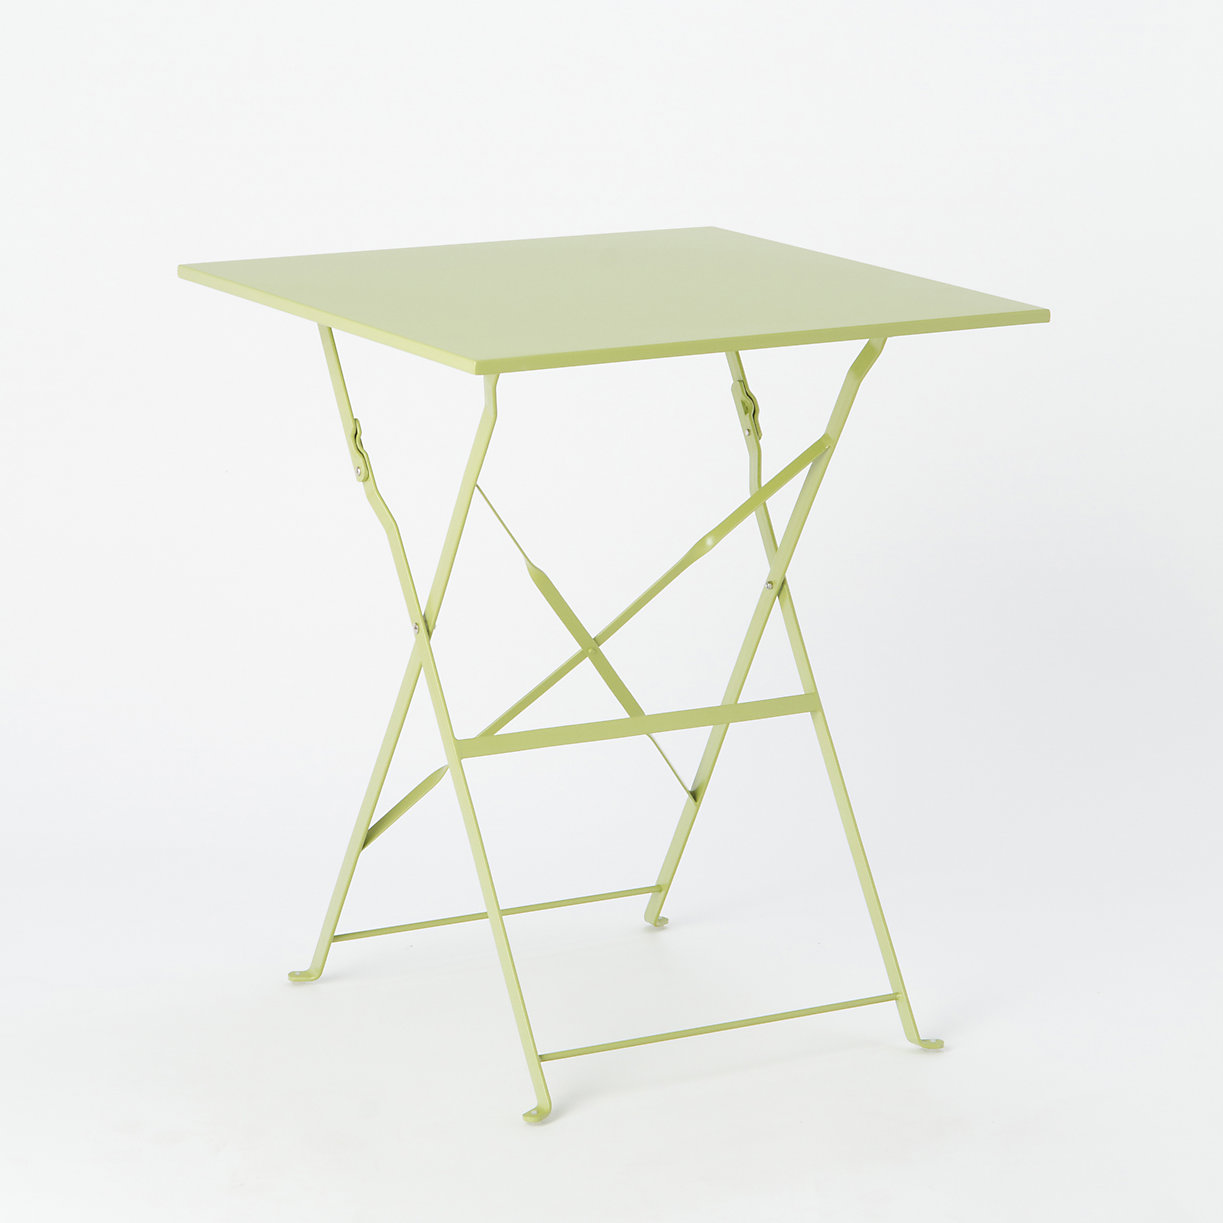 Painted Metal Bistro Table, Square. Loading Zoom